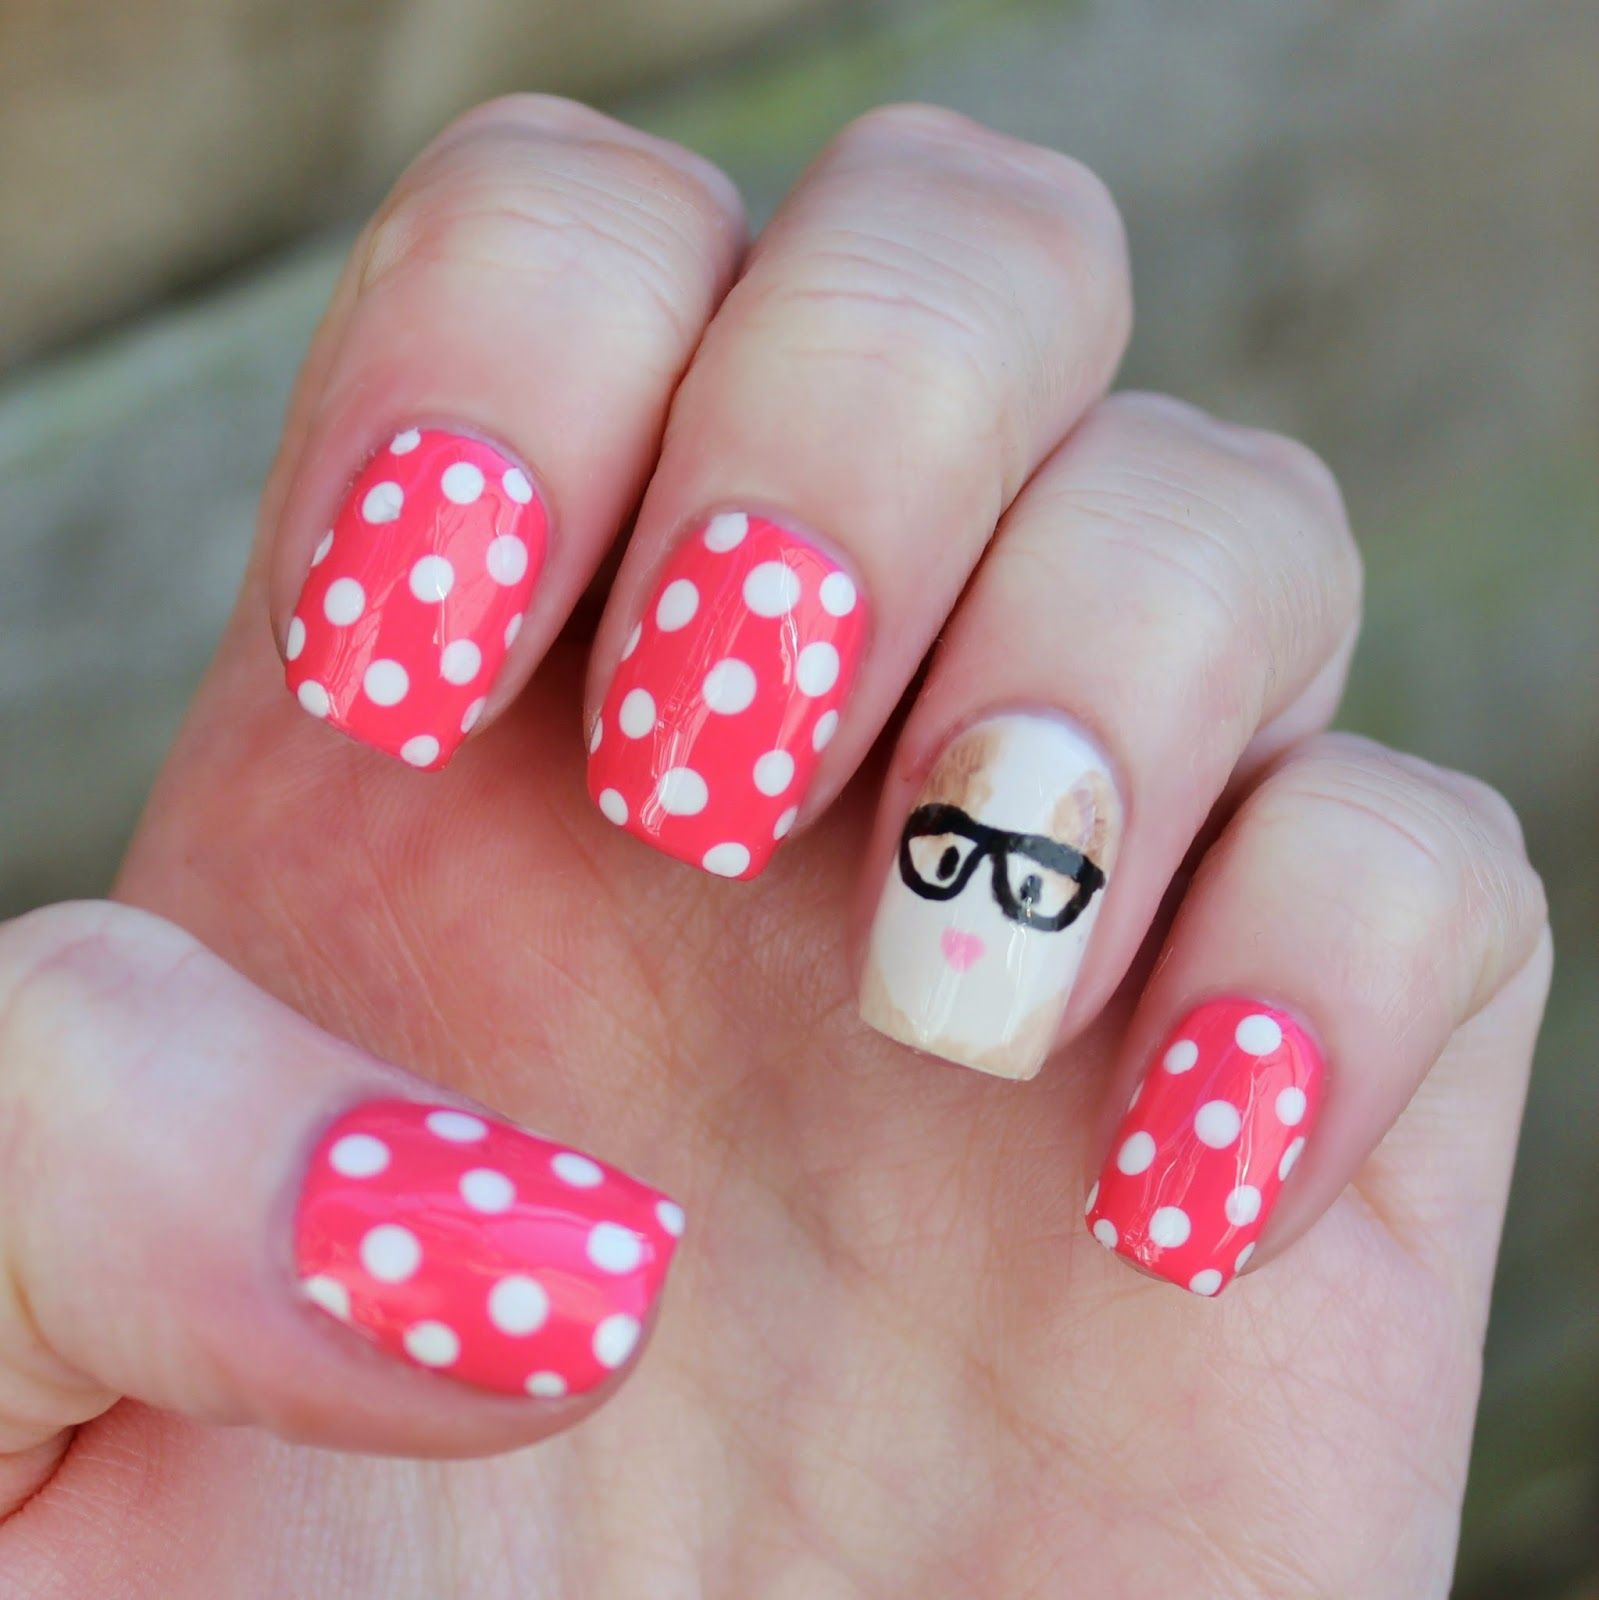 Zoella Beauty Guinea In Glasses | Nails Animals Pigs | Pinterest ...